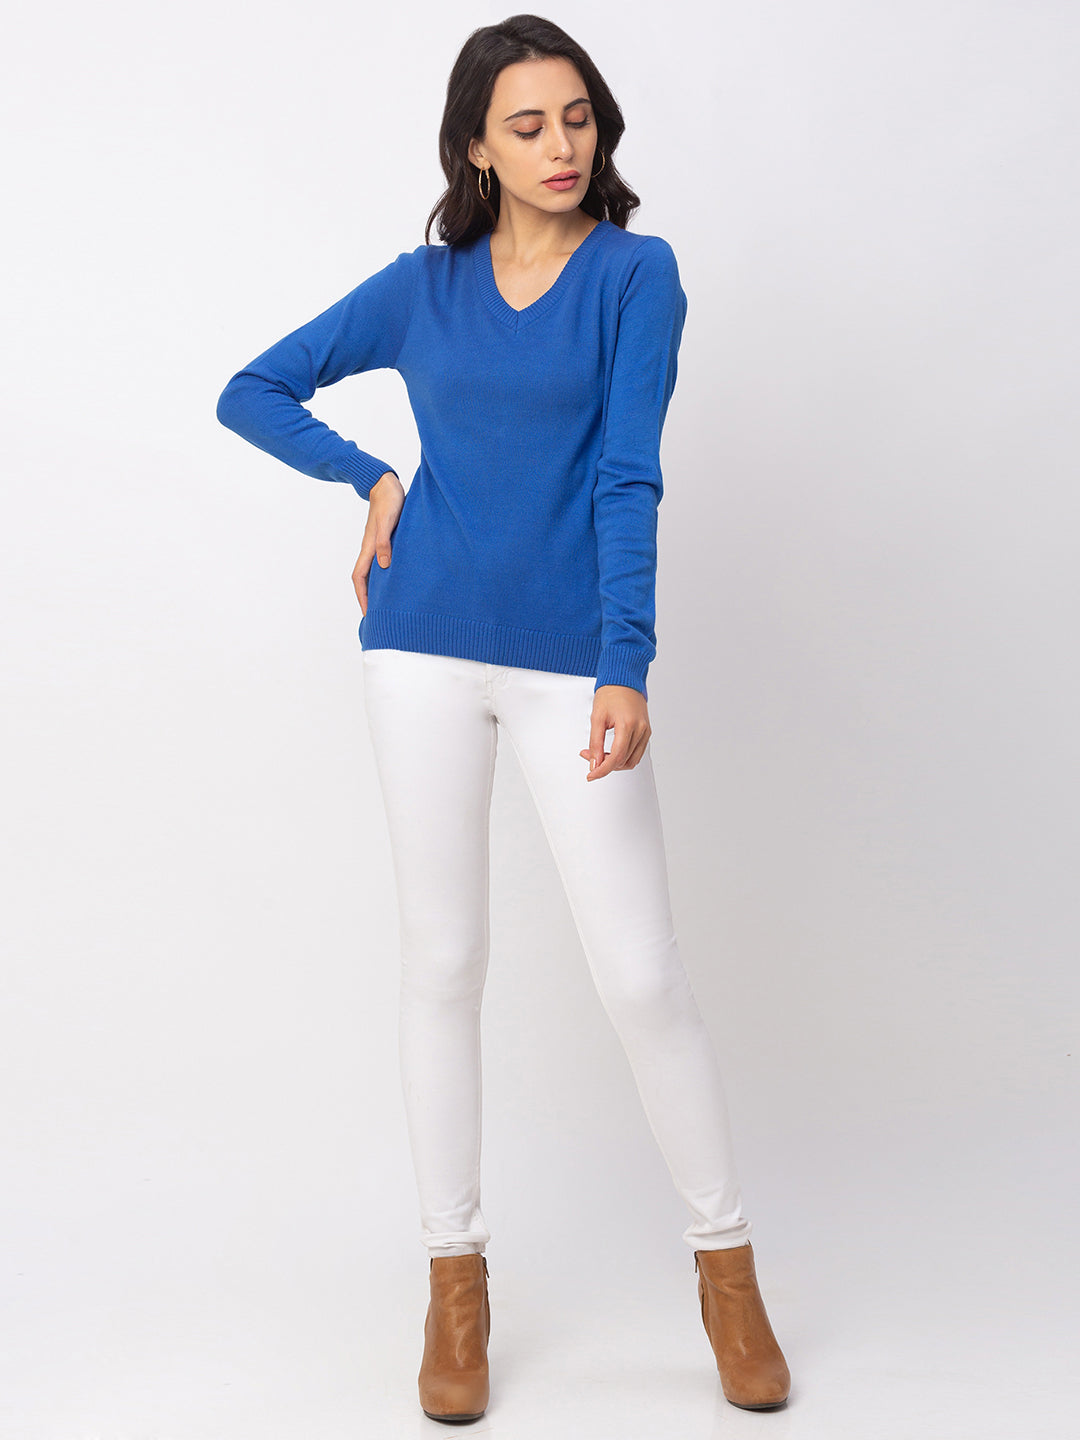 Globus Blue Solid Sweater-5